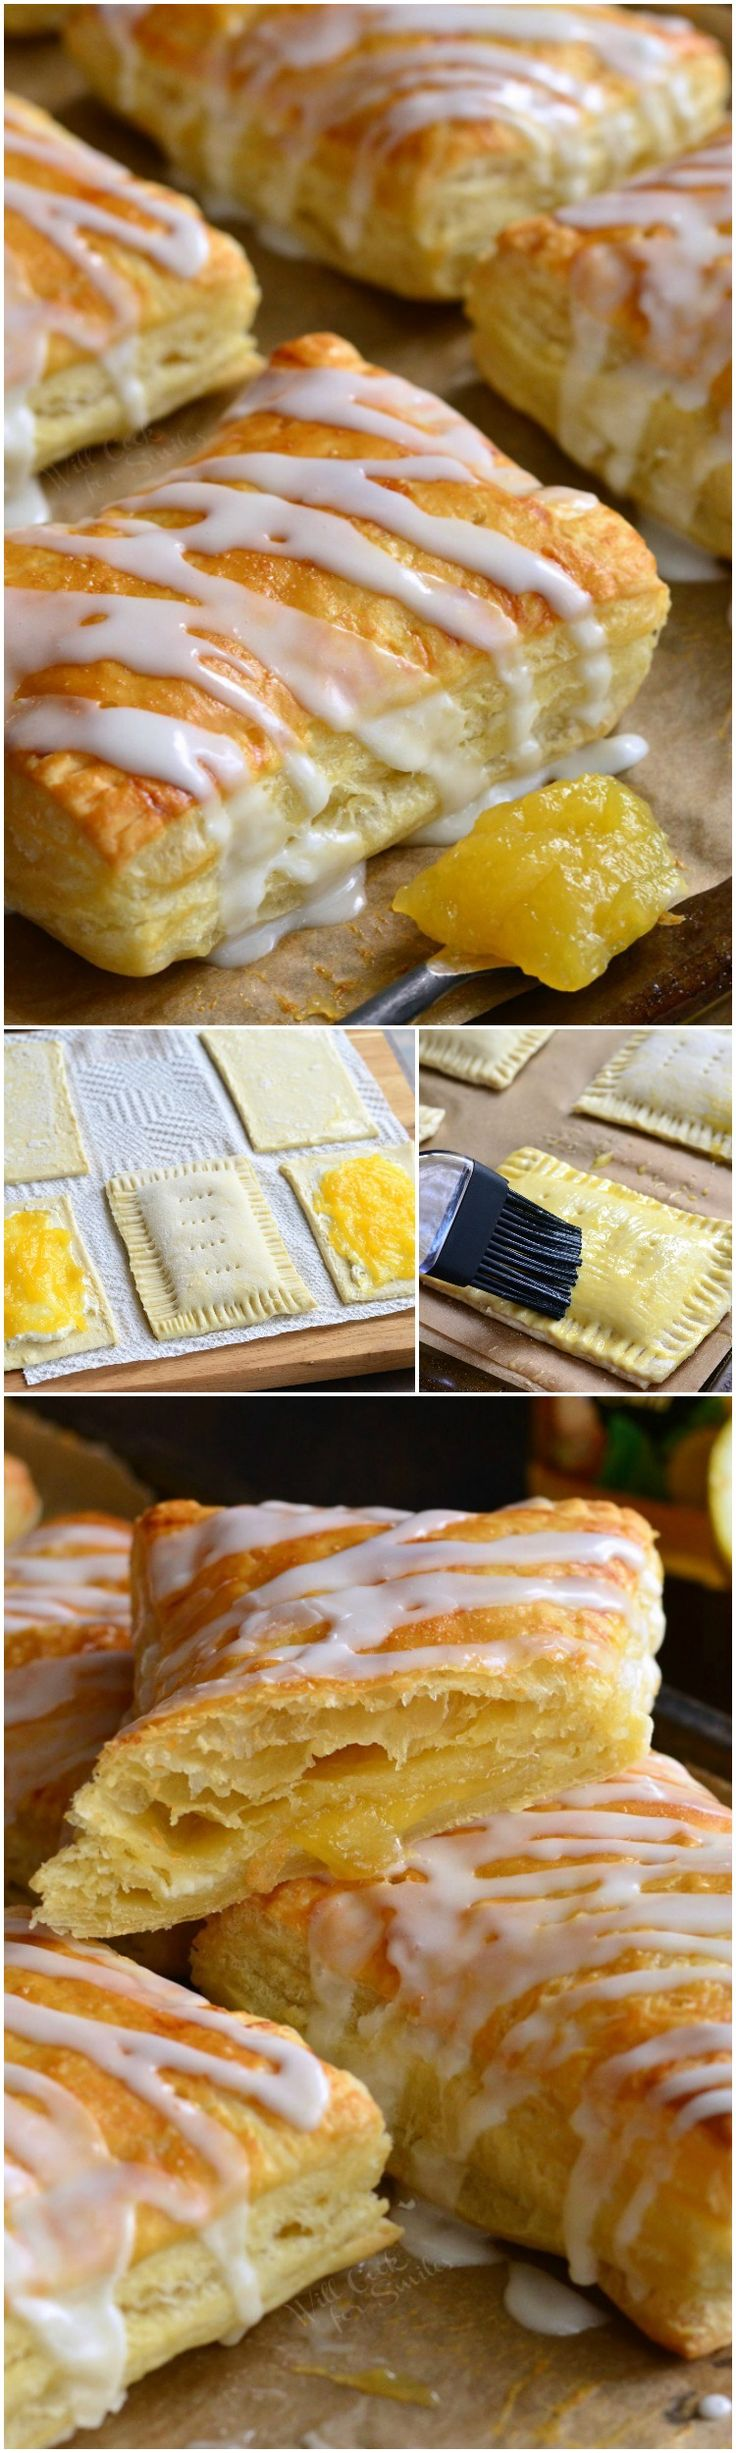 Lemon Cheesecake Hand Pies. These easy little lemon cheesecake hand pies are made with puff pastry, filled with a cheesecake mixture and lemon curd, and topped with a sweet glaze.(Baking Cheesecake Lemon)